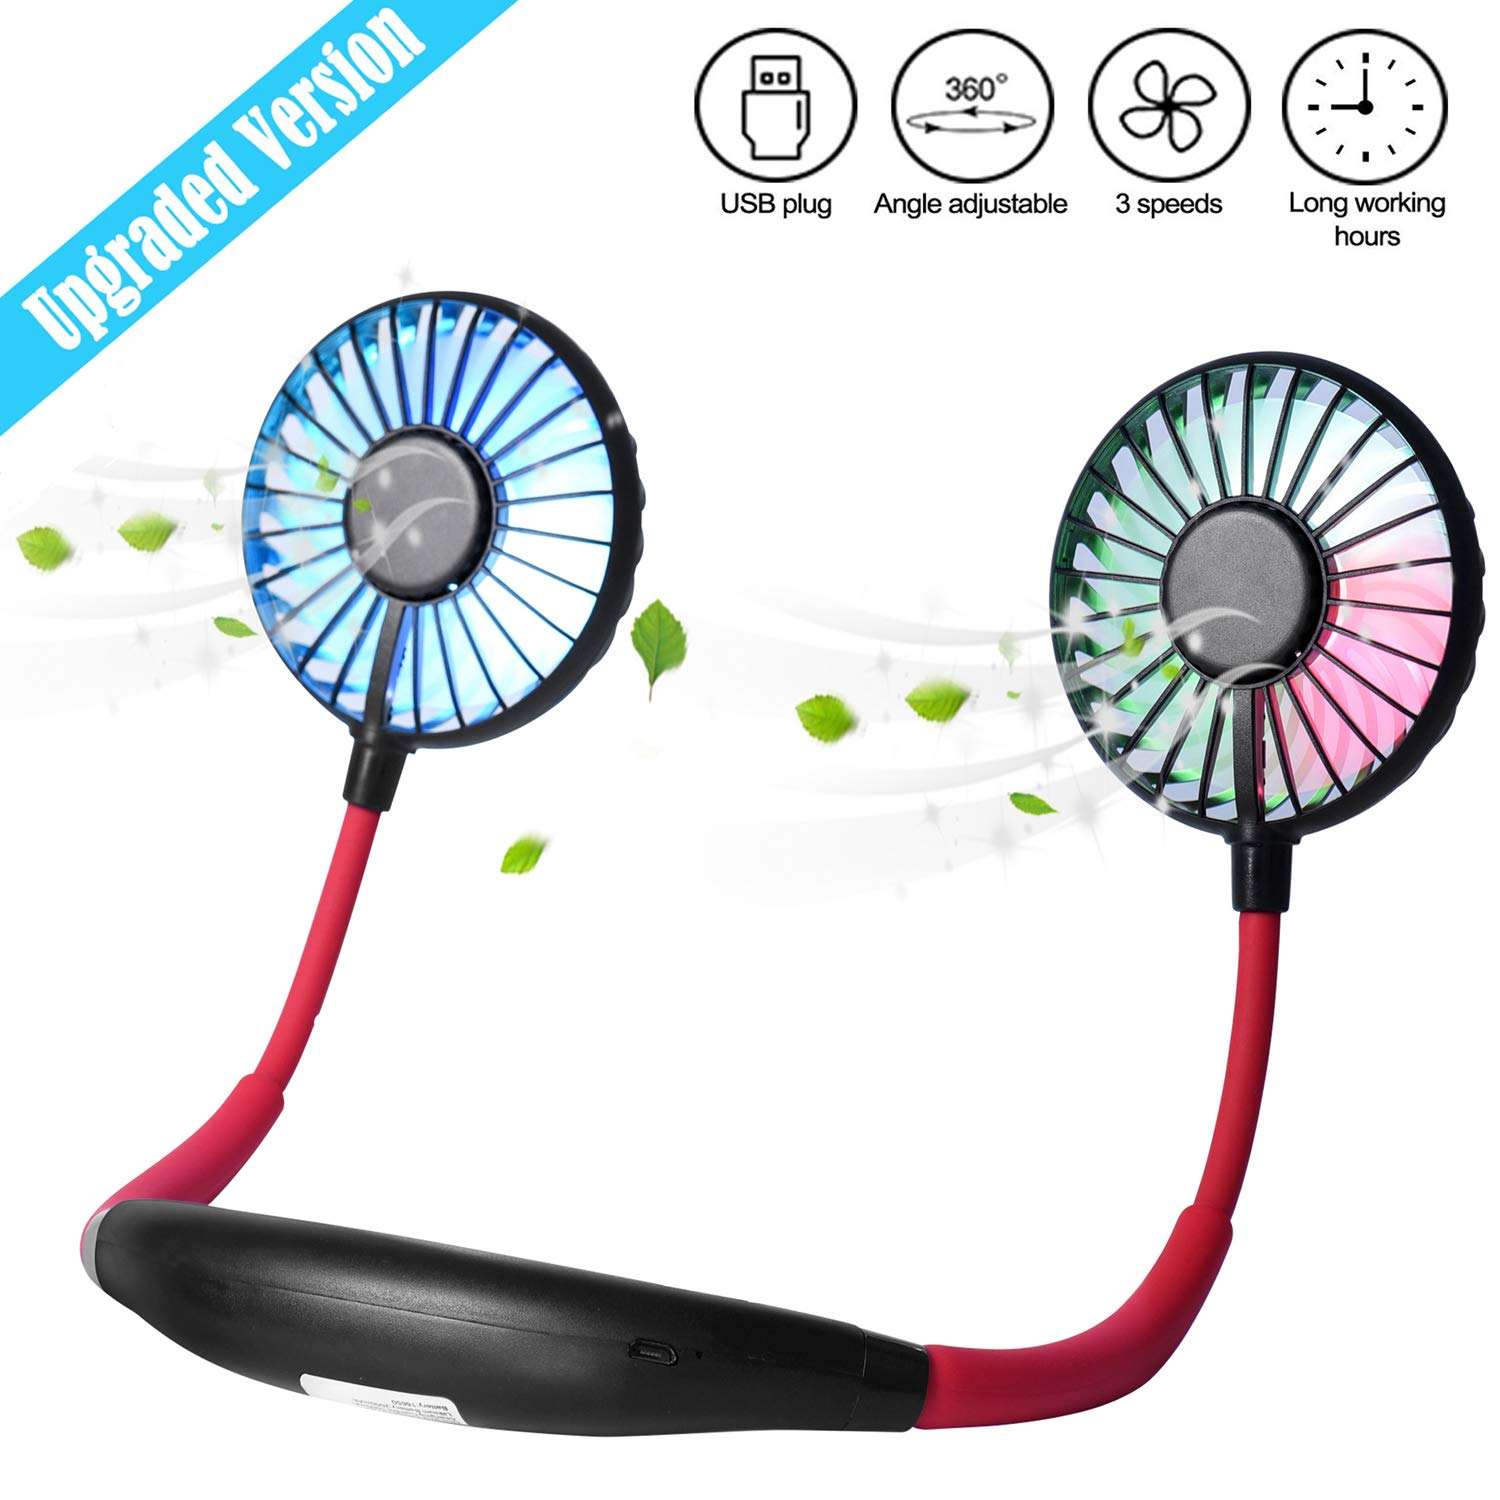 Upgraded Version Portable Neck Fan, Color Changing LED, with Aromatherapy, 360 Free Rotation, and Lower Noise Strong Airflow Headphone Design for Sport, Office, Home, Outdoor, Travel, etc.